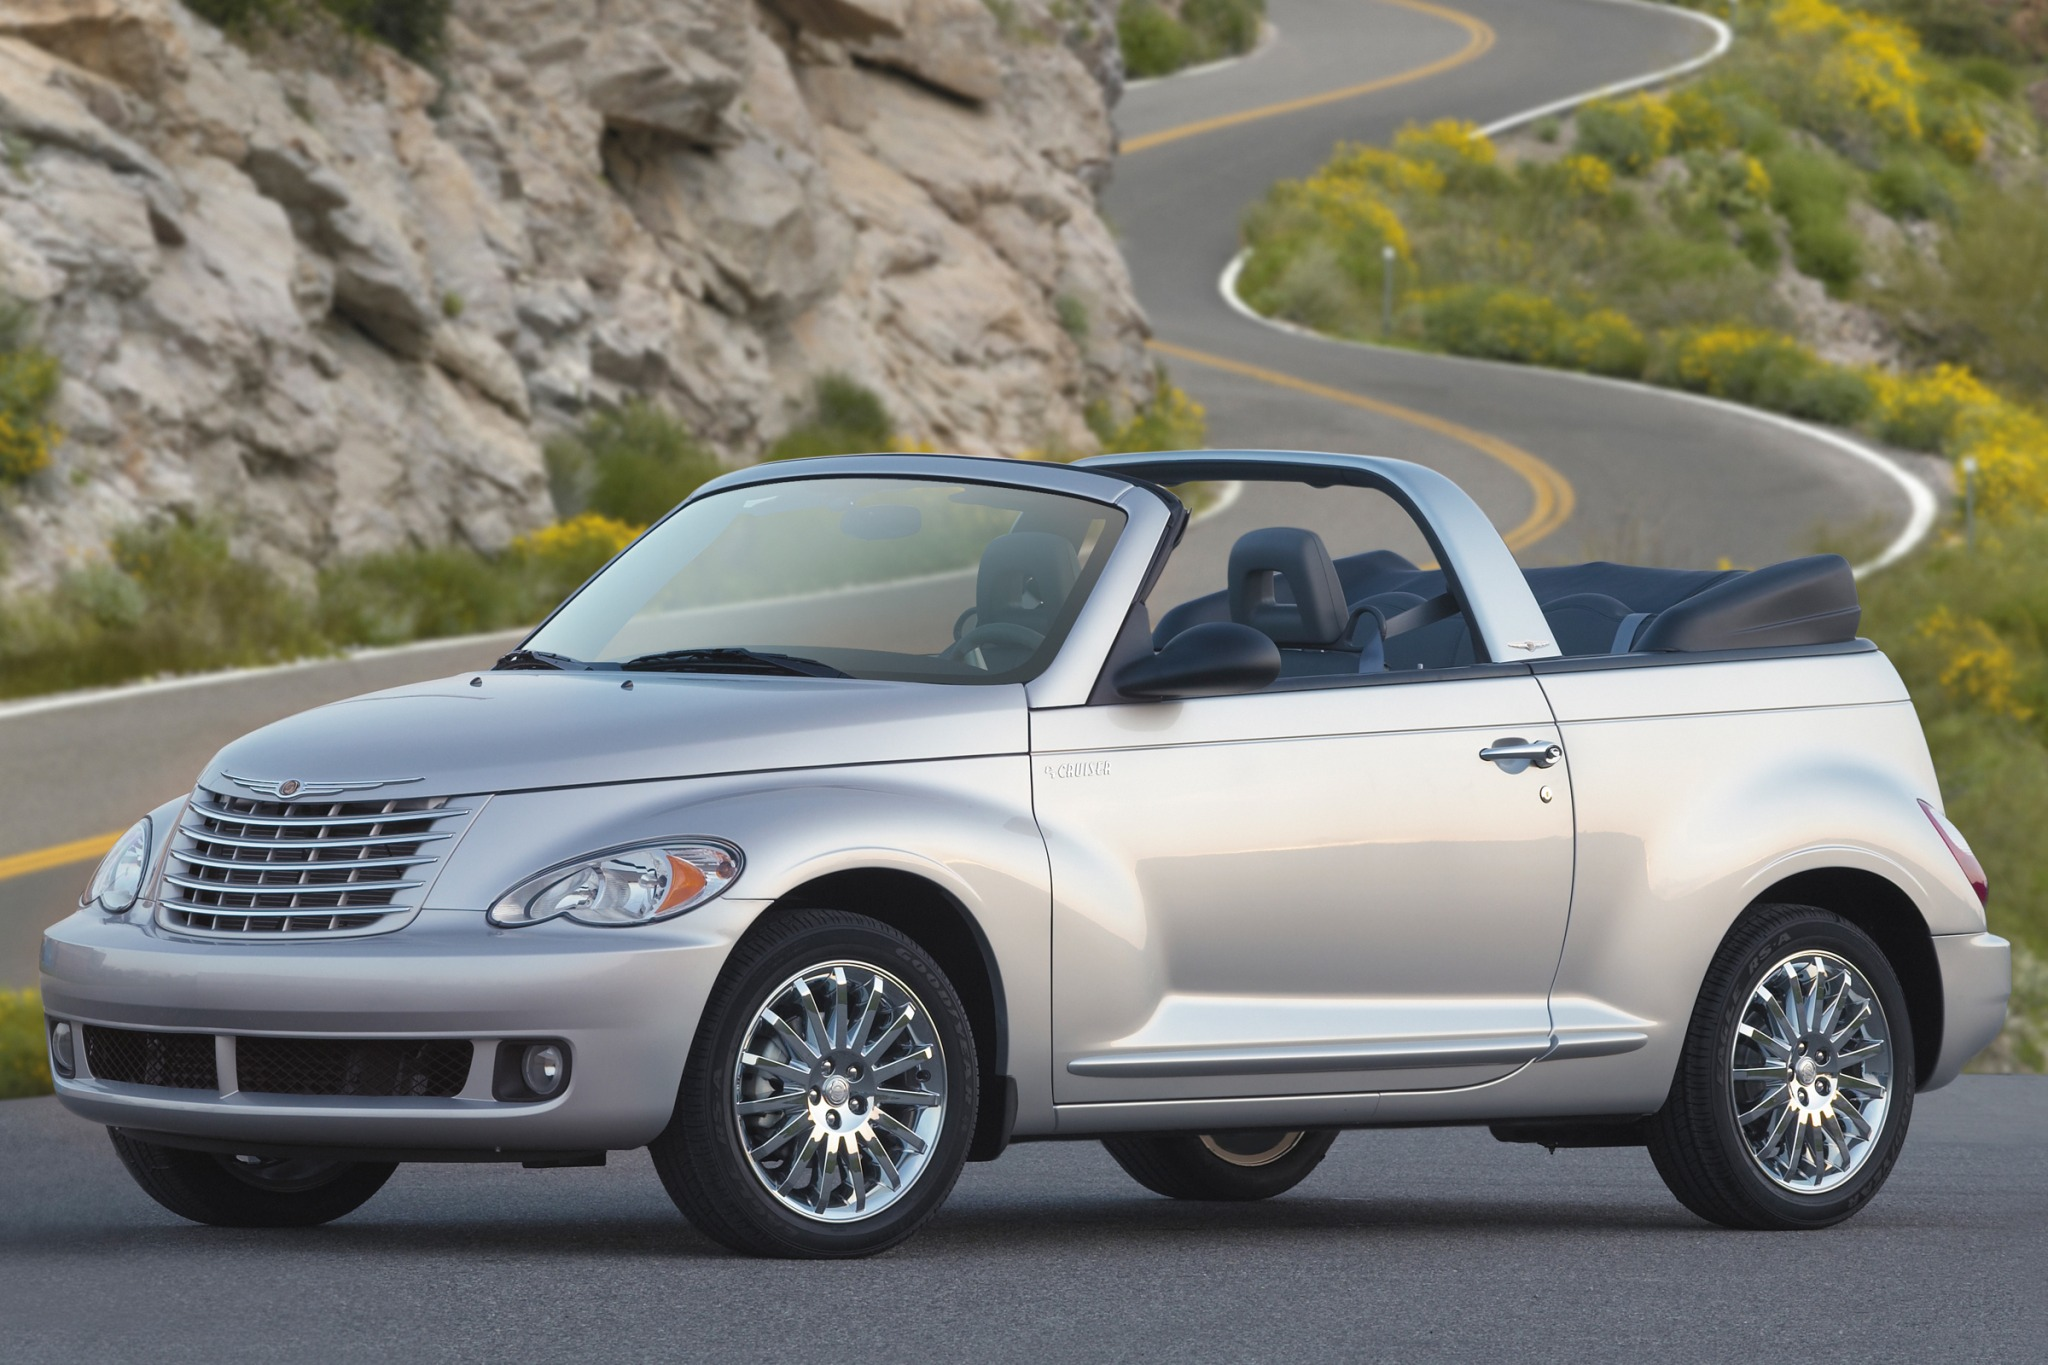 2007 Chrysler PT Cruiser  exterior #1